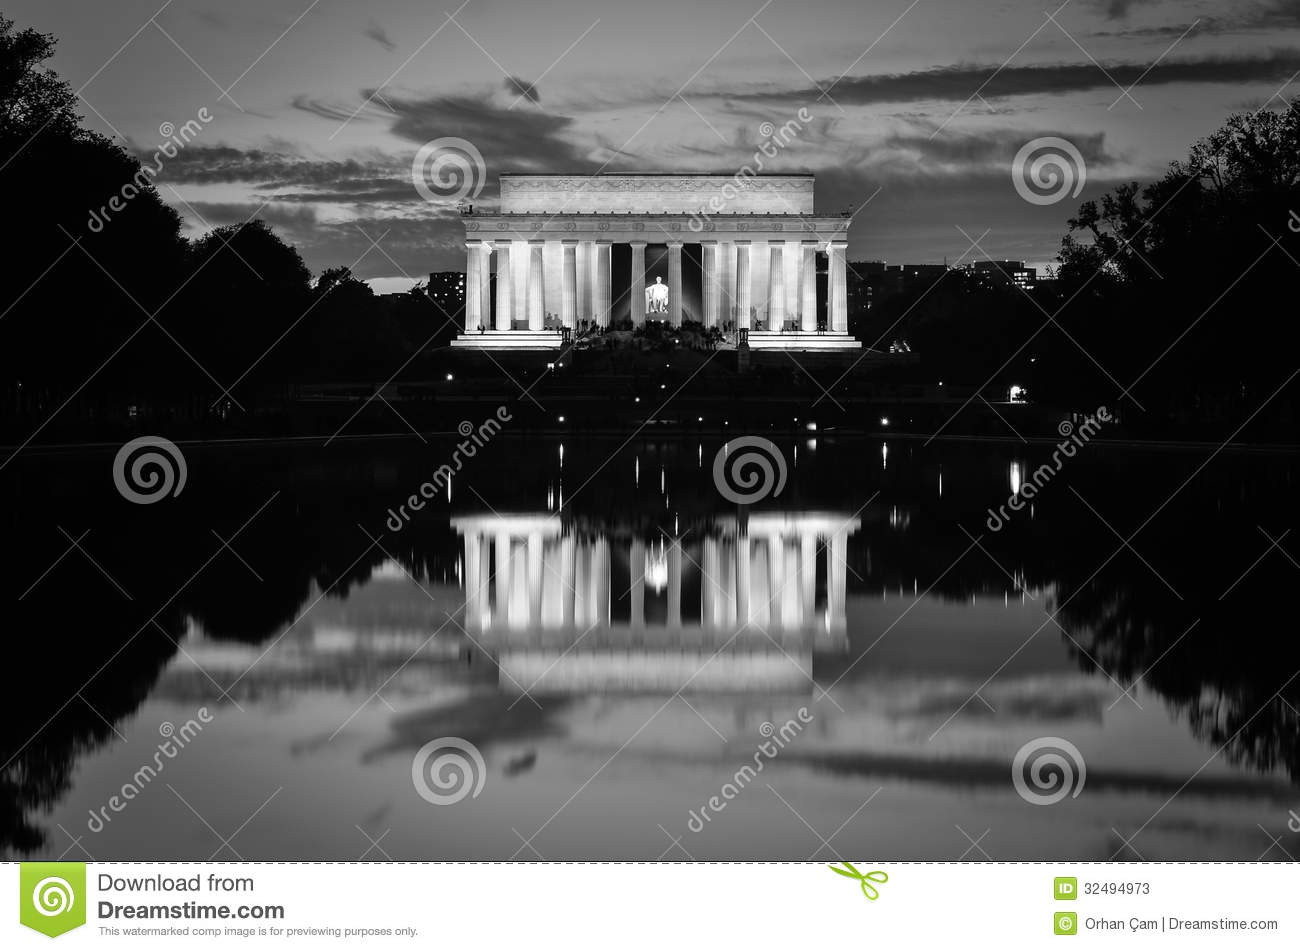 Lincoln Memorial and mirror reflection in black and white, Washington DC USA